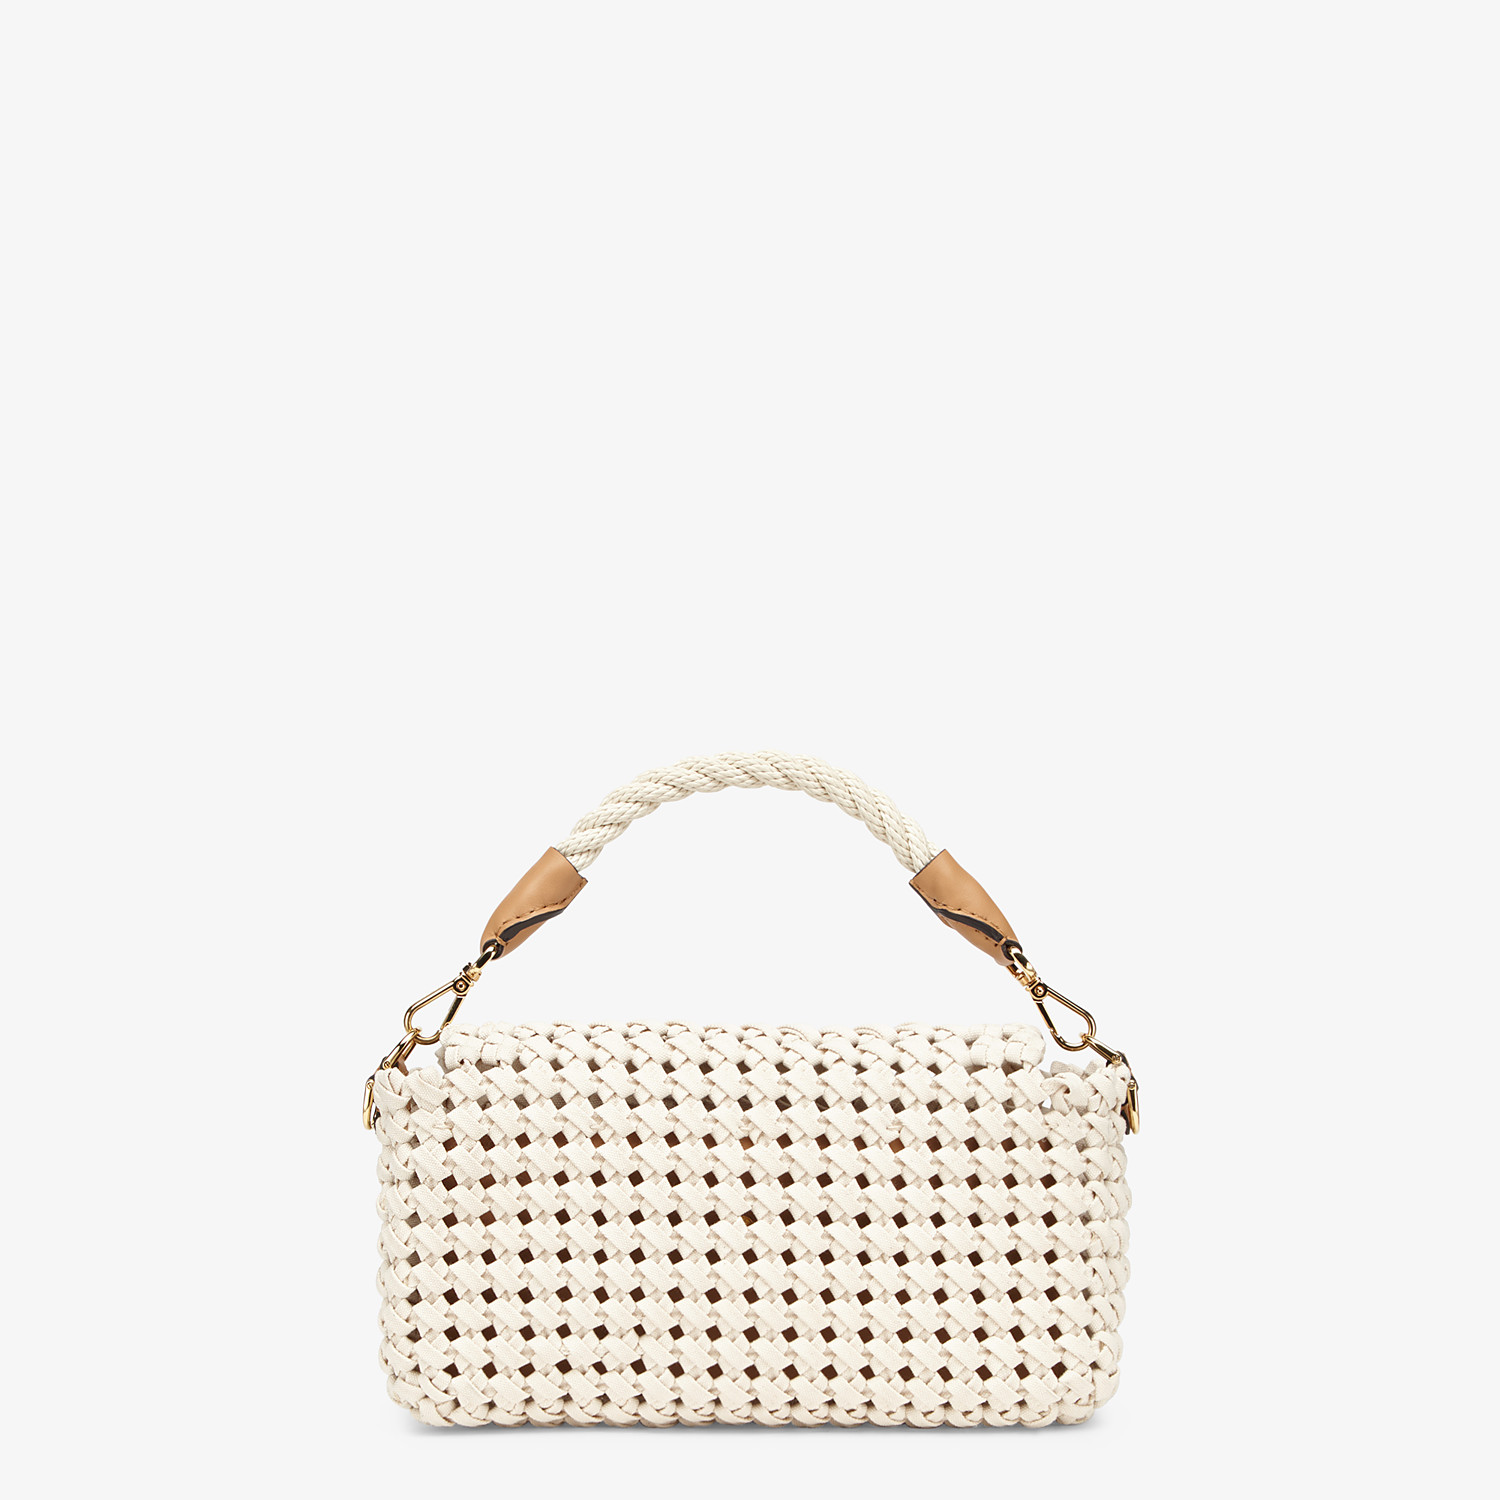 FENDI BAGUETTE - Tasche aus geflochtenem Canvas in Beige - view 4 detail